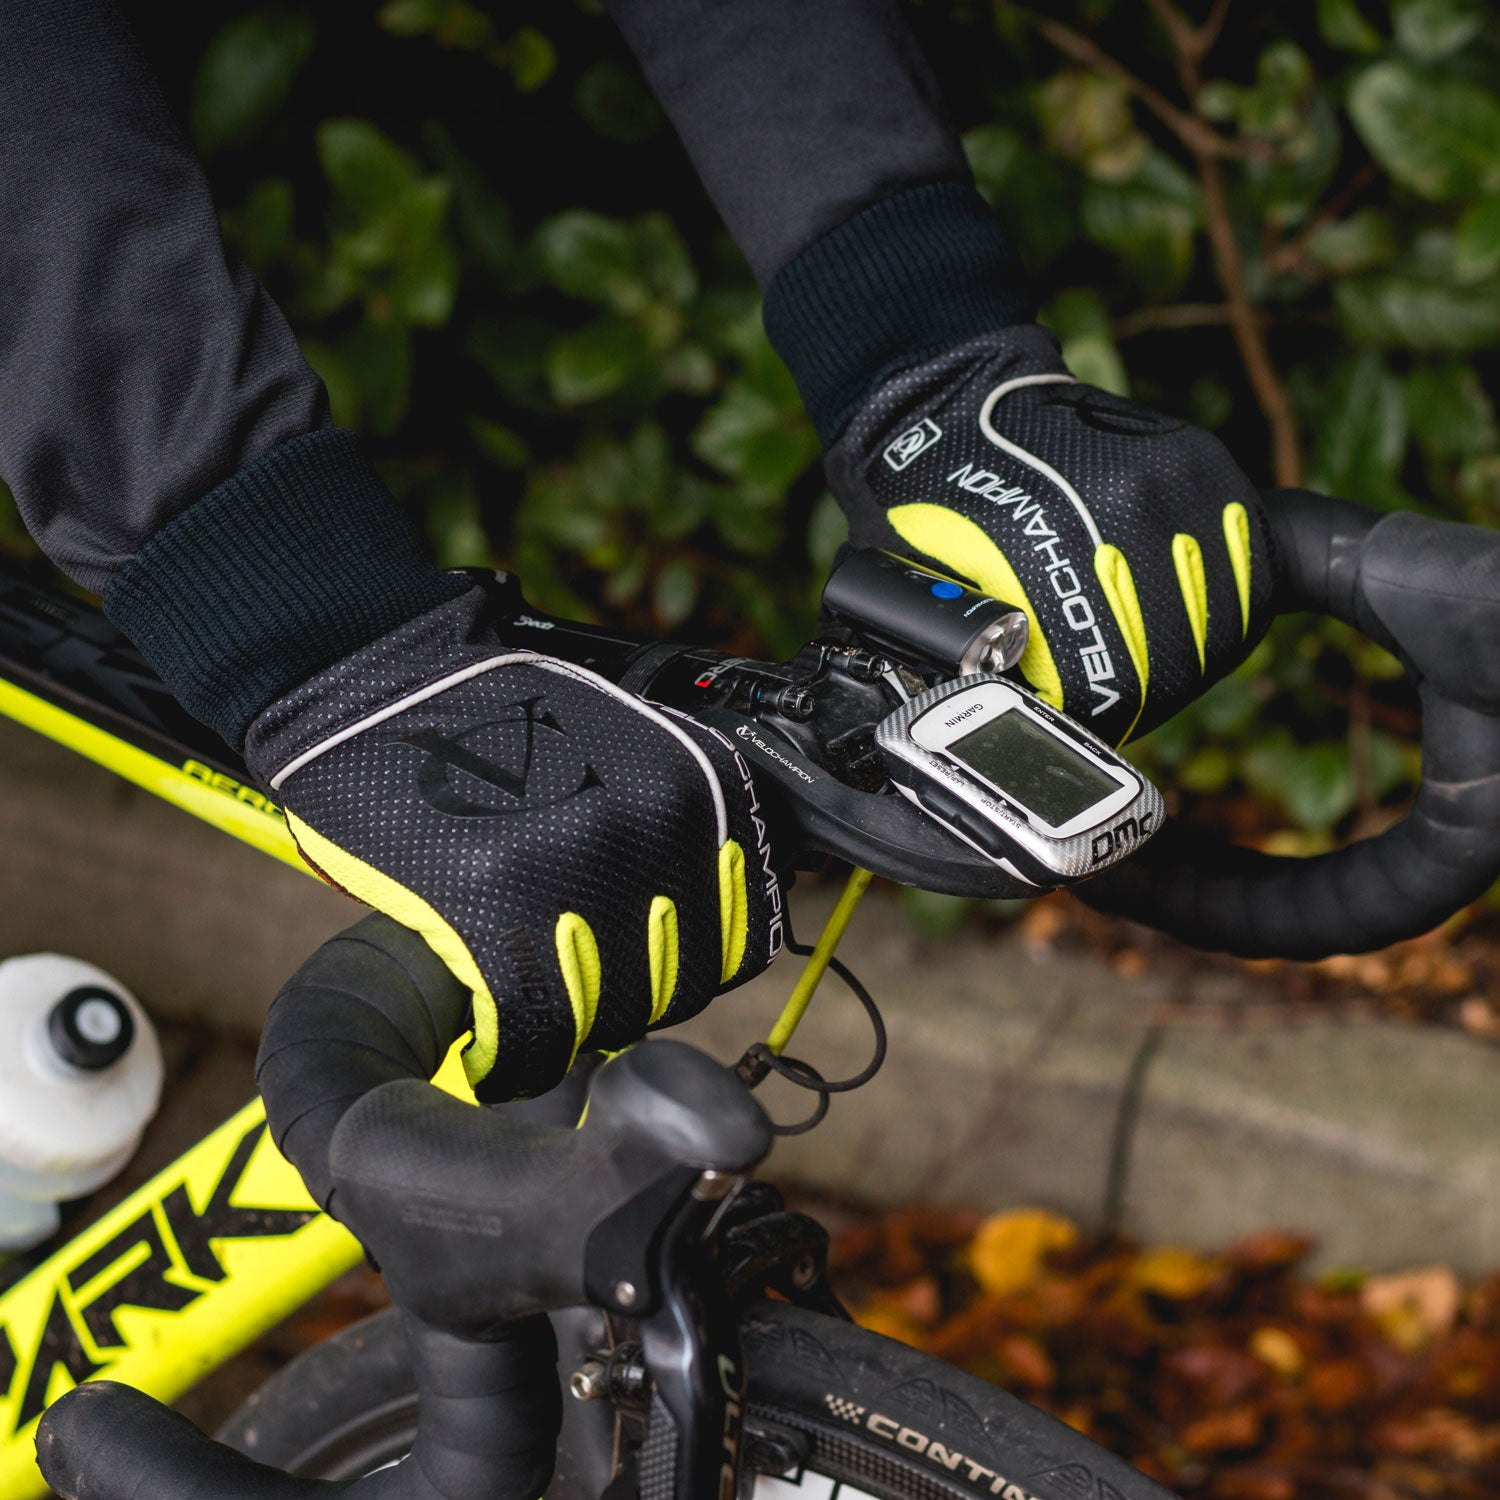 VeloChampion Autumn Windproof/Showerproof Cycling Gloves - Velochampion